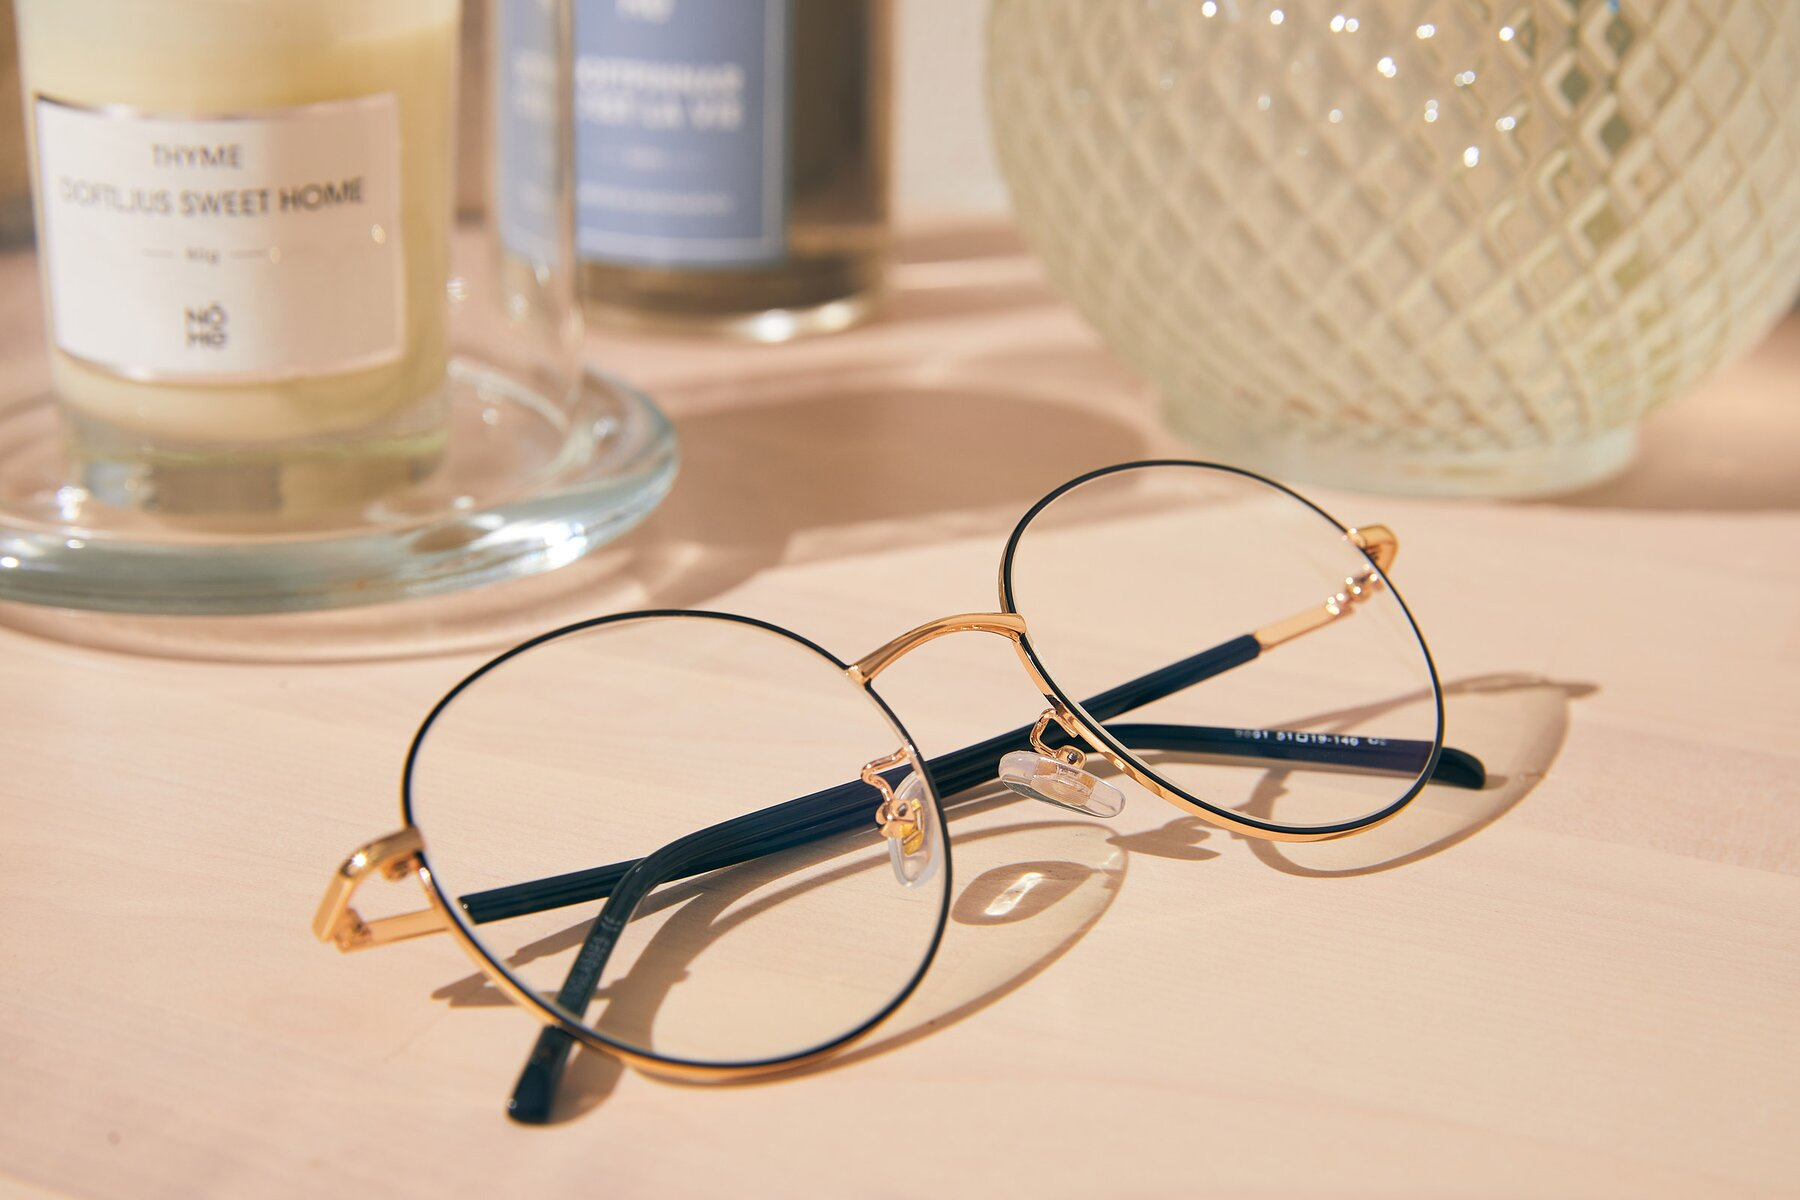 Lifestyle photography #1 of Cosmos in Black-Gold with Clear Eyeglass Lenses